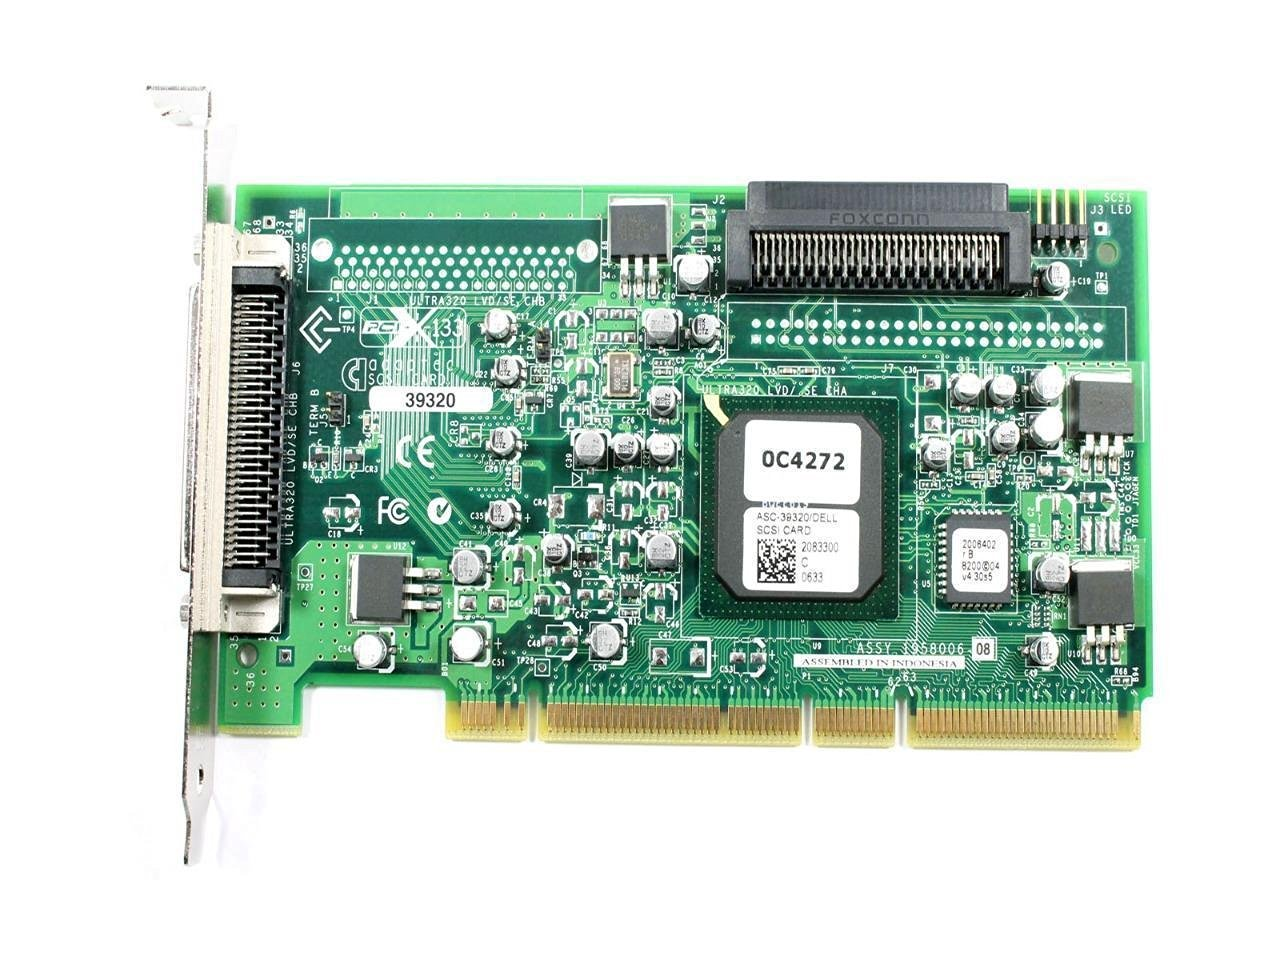 COMPAQ SCSI CARD 29160 DRIVERS FOR WINDOWS DOWNLOAD